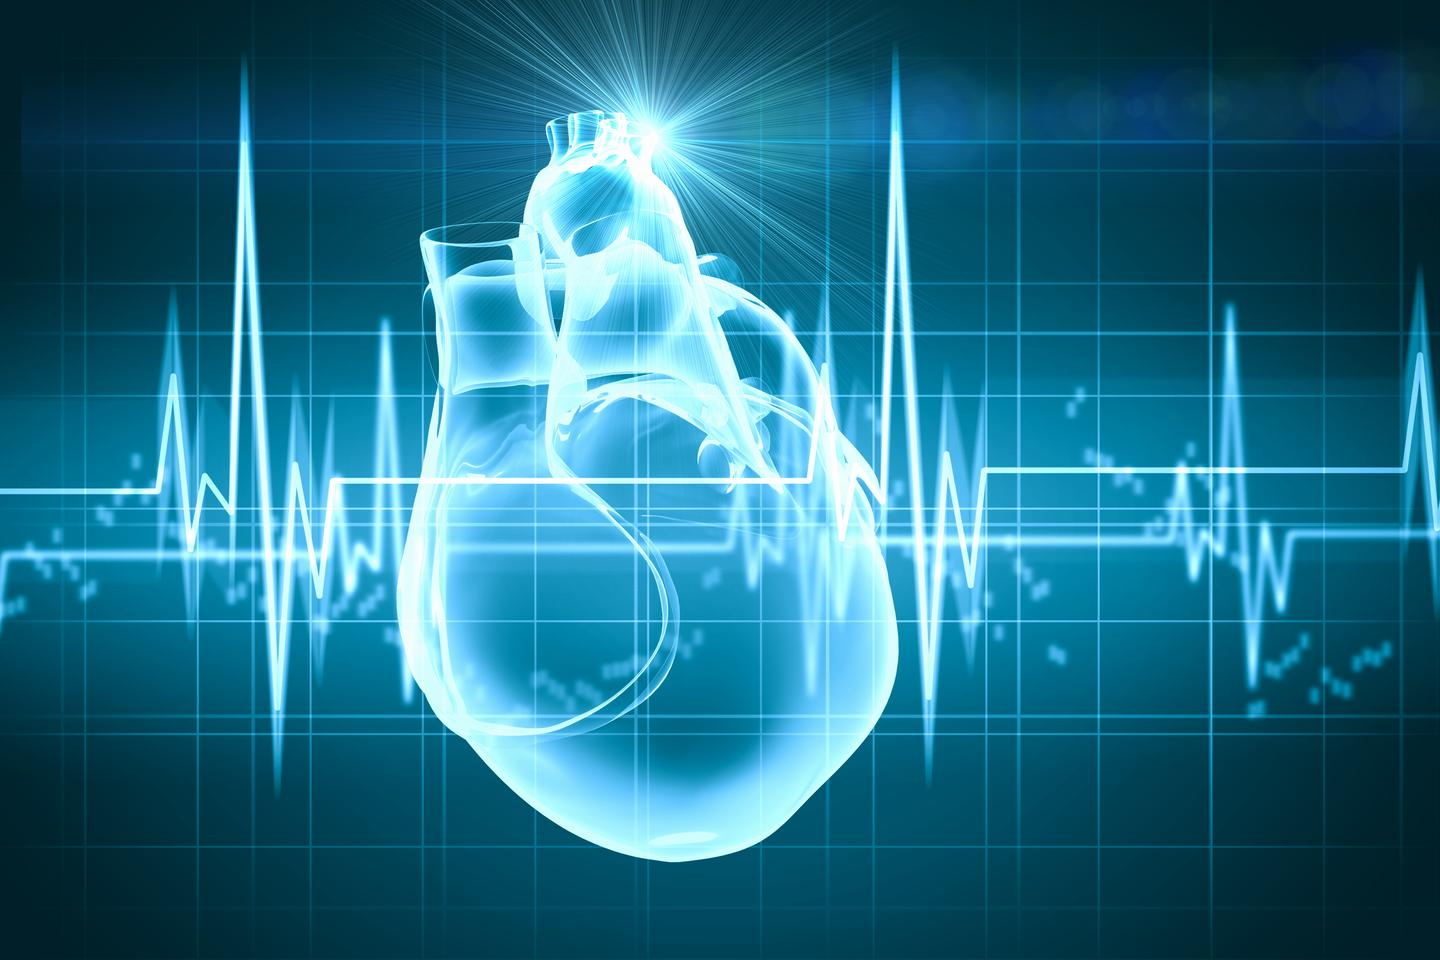 Rice University researchers use the heartbeat as a random signal generator to make medical implants more secure (Image: Sergey Nivens/Shutterstock)